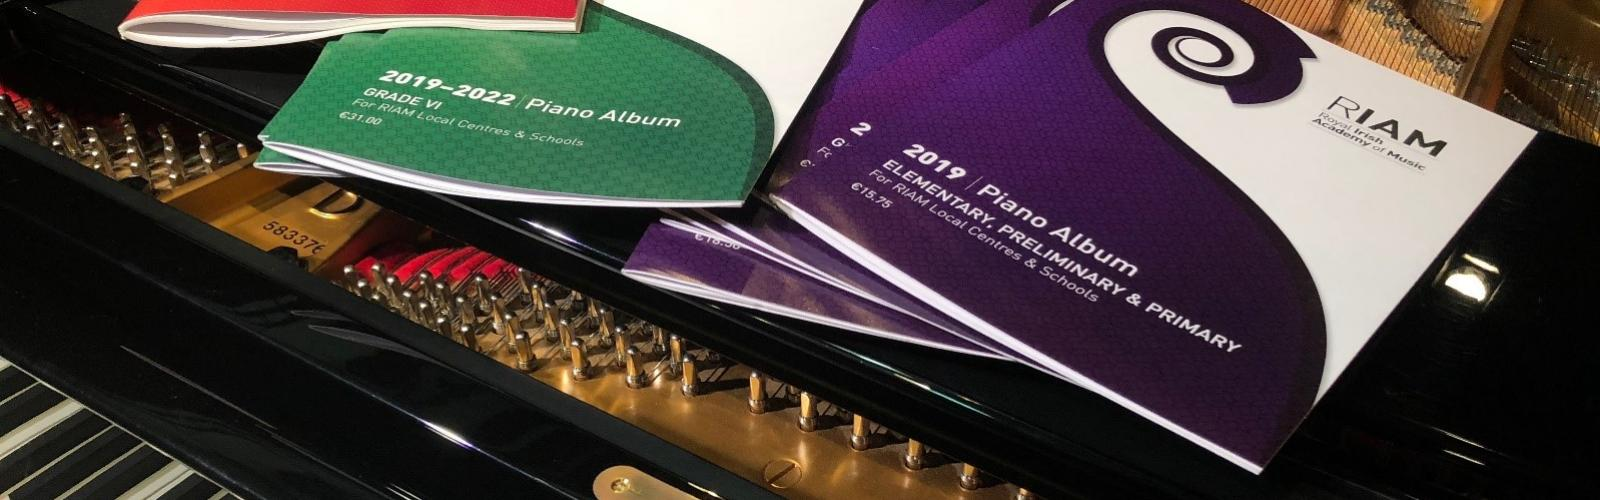 Piano albums on piano